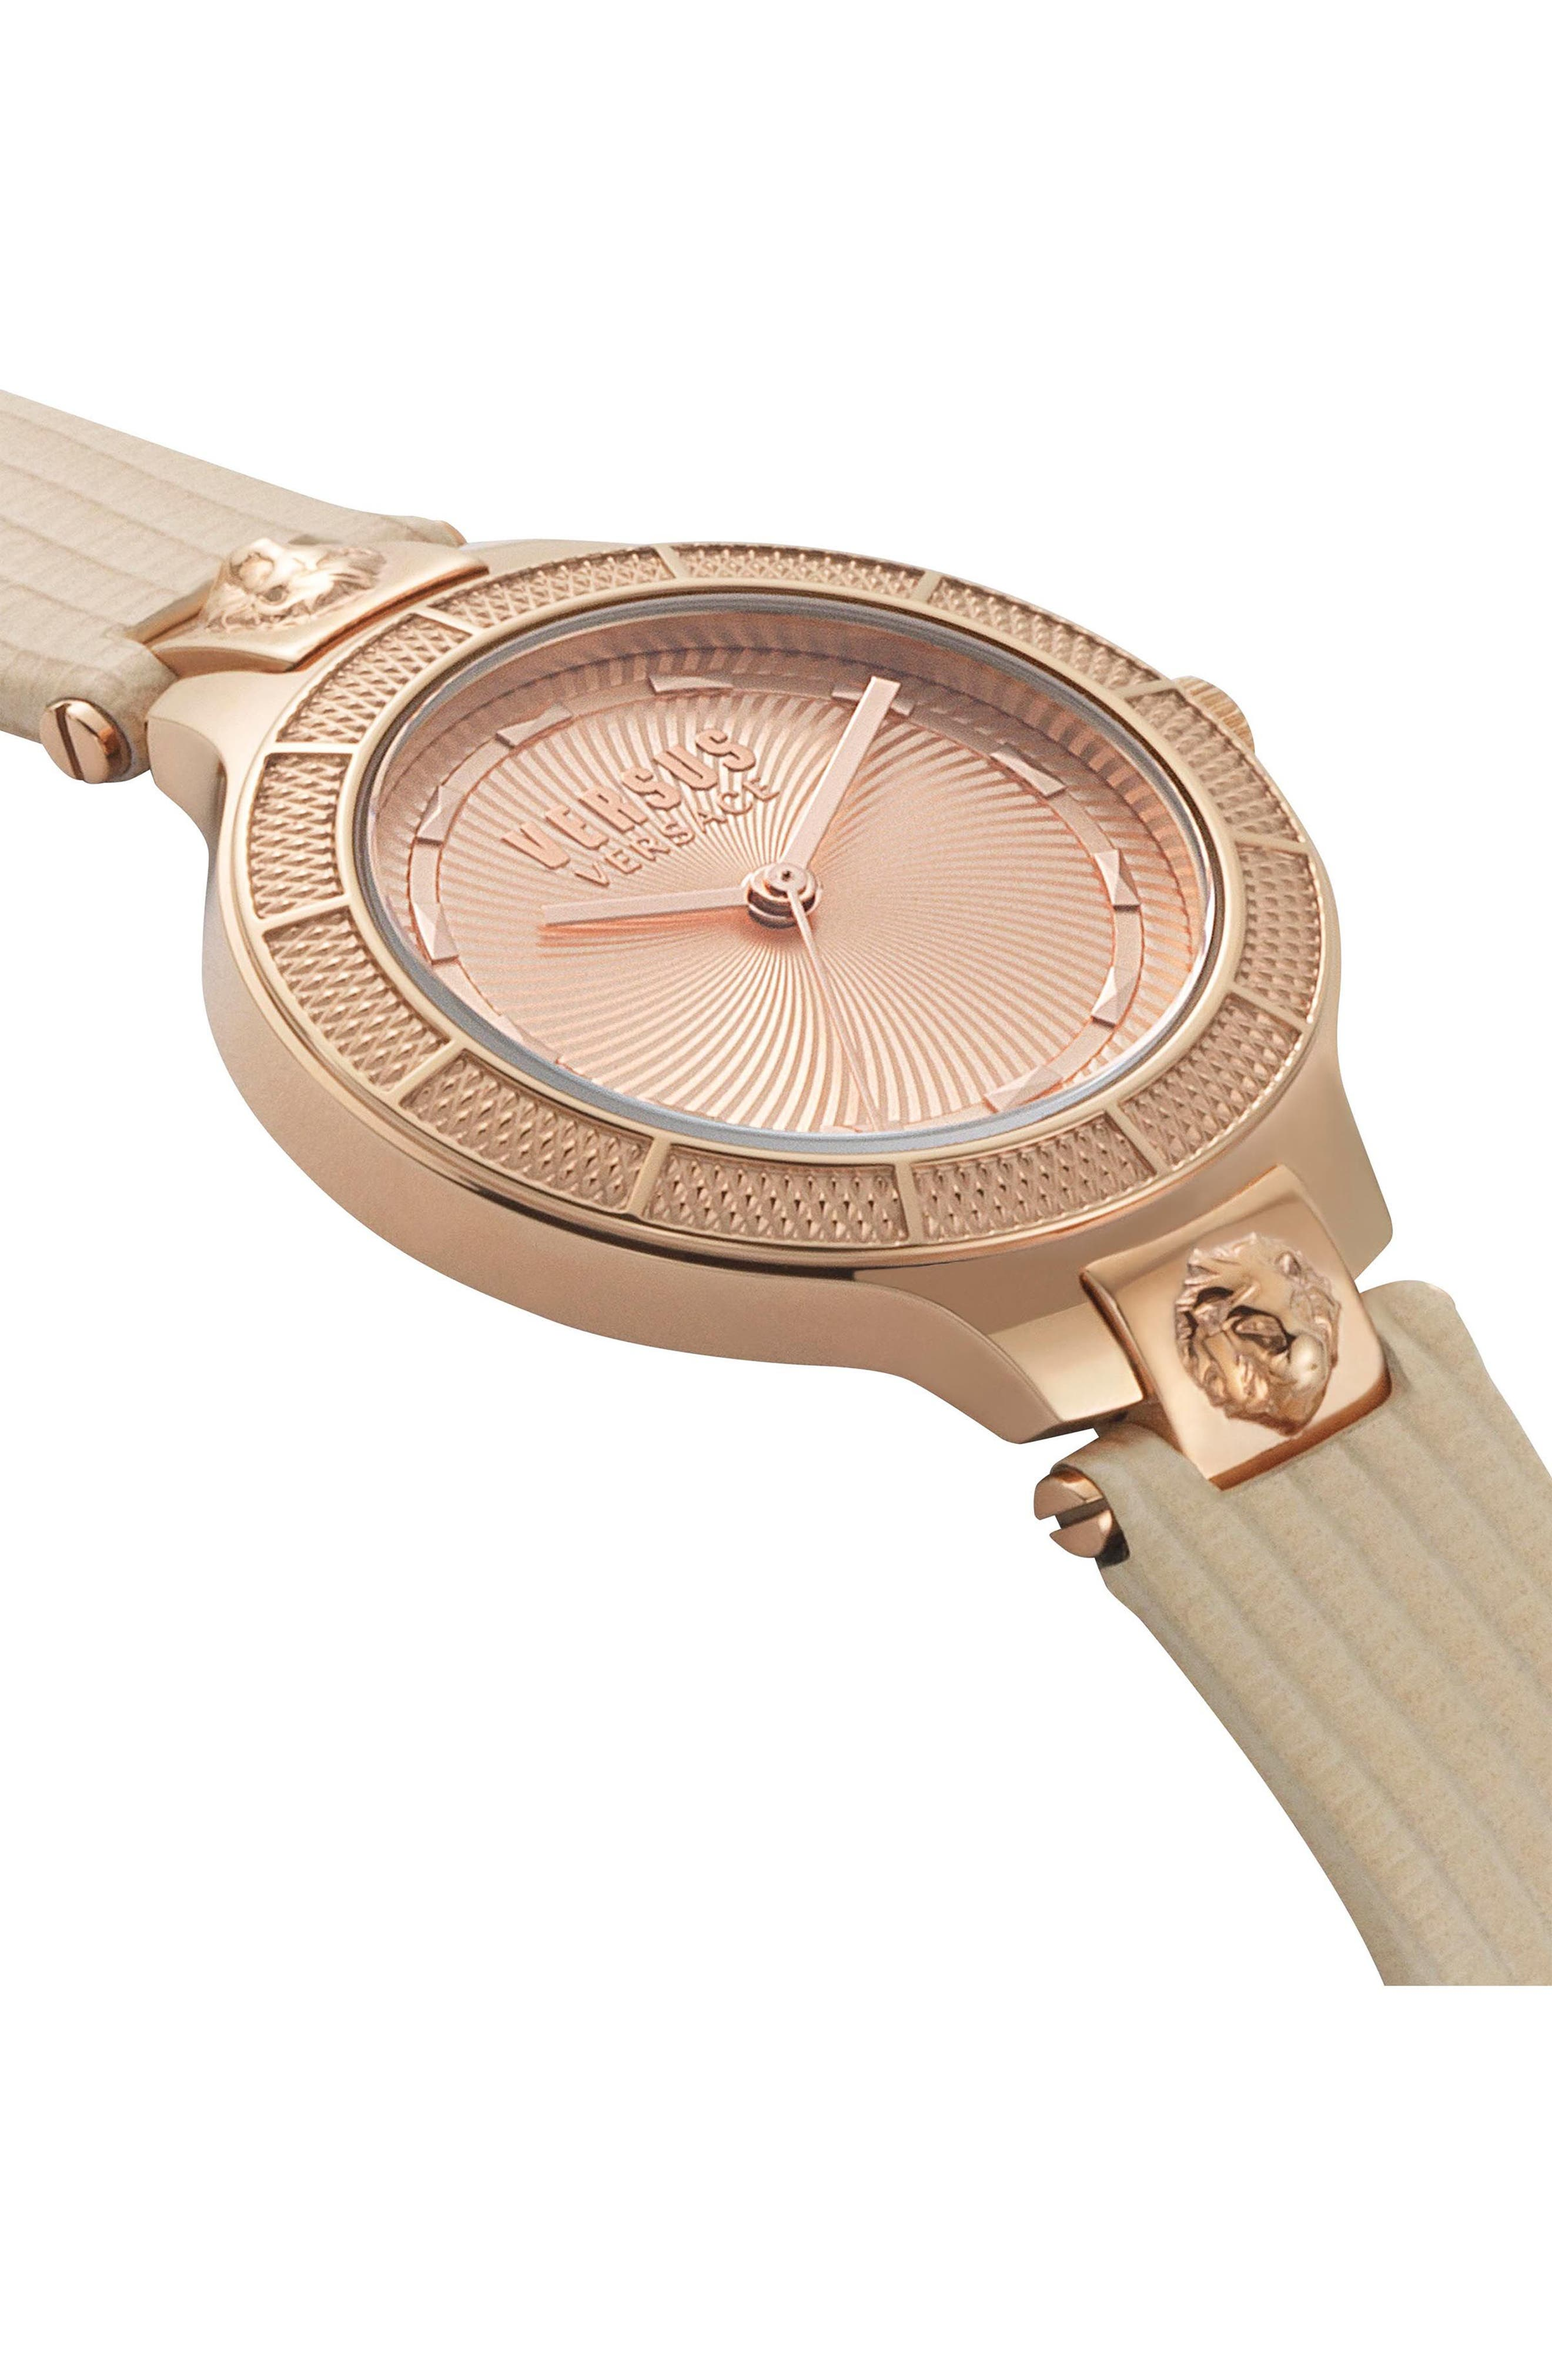 VERSUS VERSACE, Claremont Leather Strap Watch, 32mm, Alternate thumbnail 3, color, PINK/ ROSE GOLD